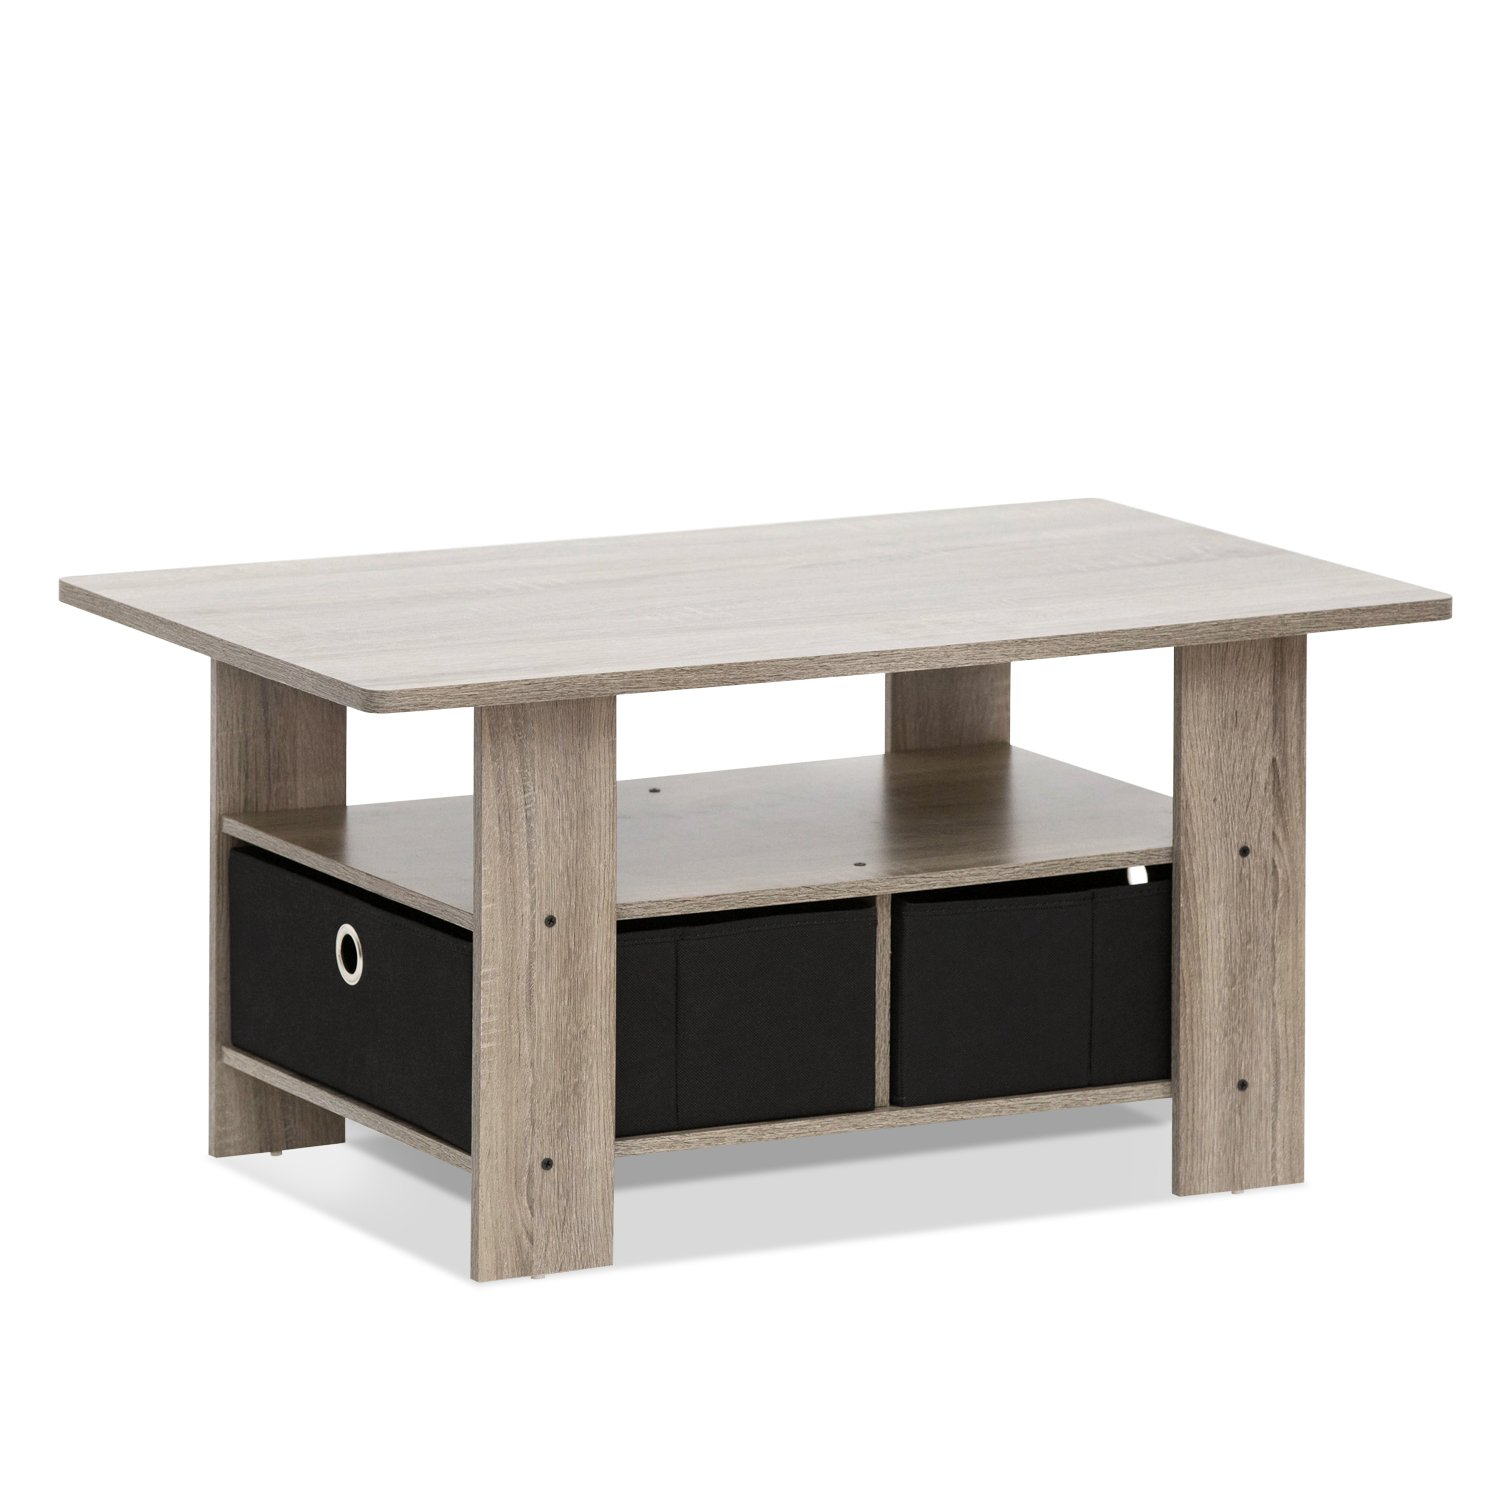 Amazon.com: Furinno 11158GYW/BK Coffee Table With Bin Drawer, French Oak  Grey/Black: Kitchen U0026 Dining